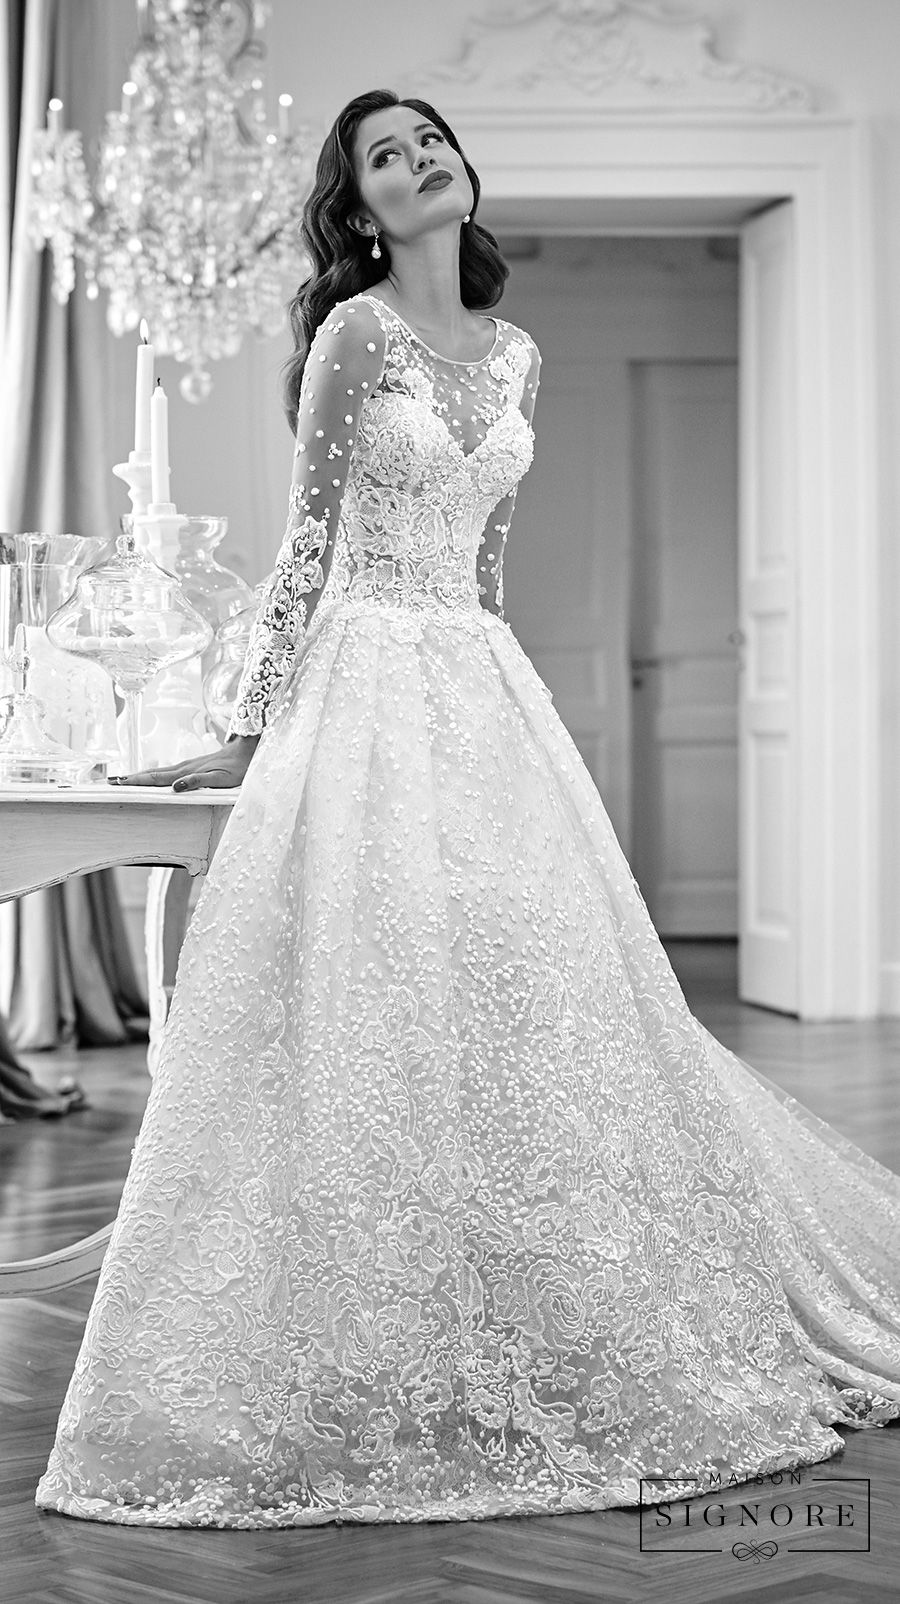 Maison Signore Exquisite Made In Italy Wedding Dresses Now